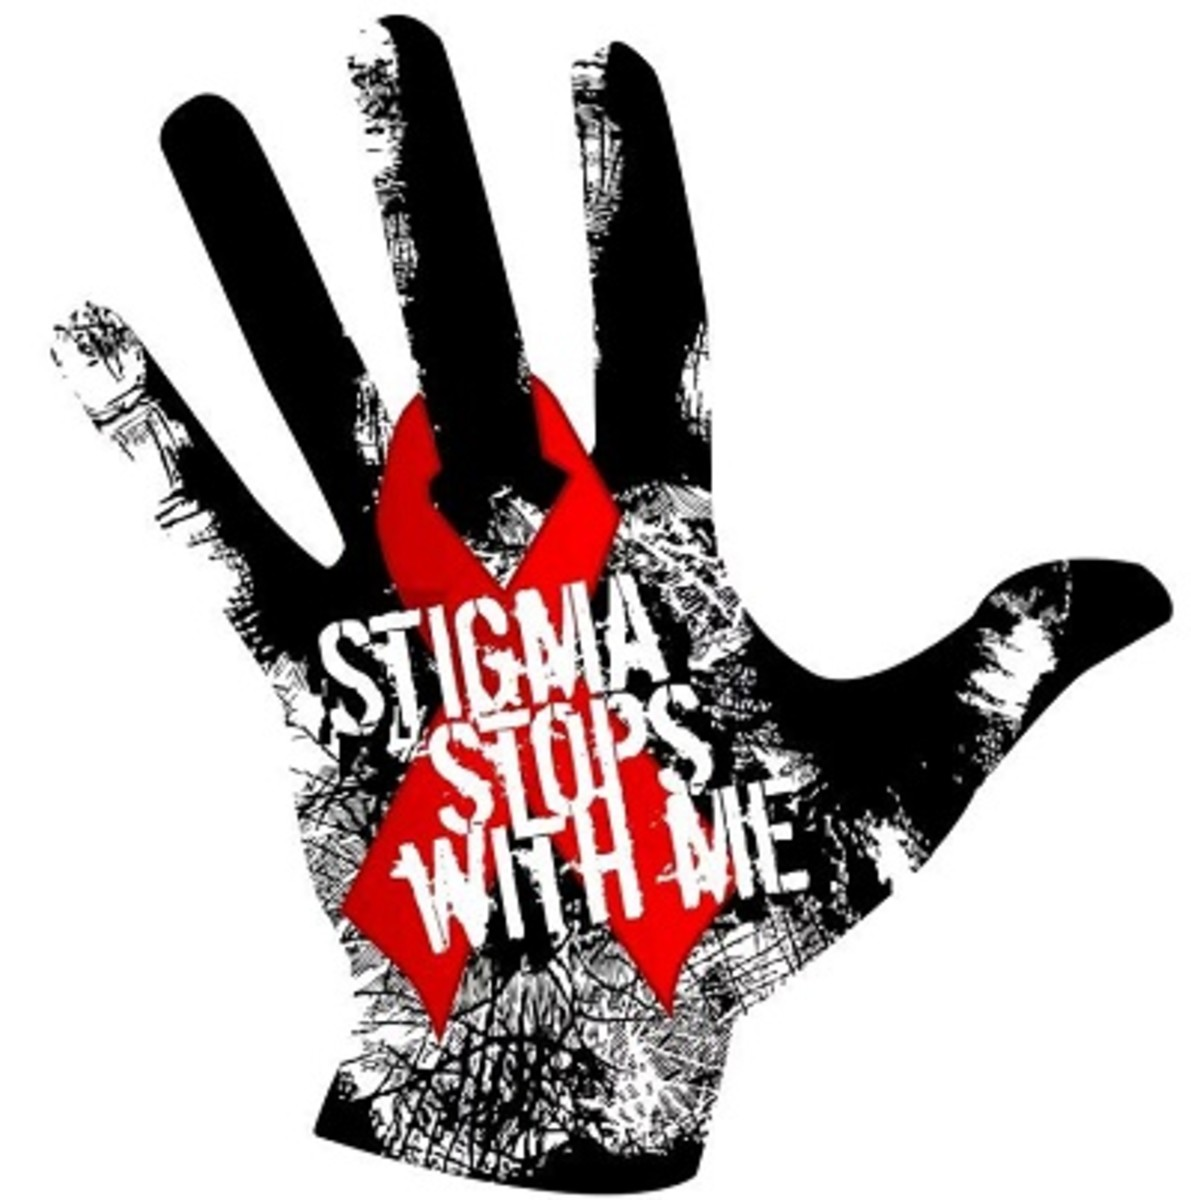 HIV/AIDS Stigma Still Experienced in Developing Countries